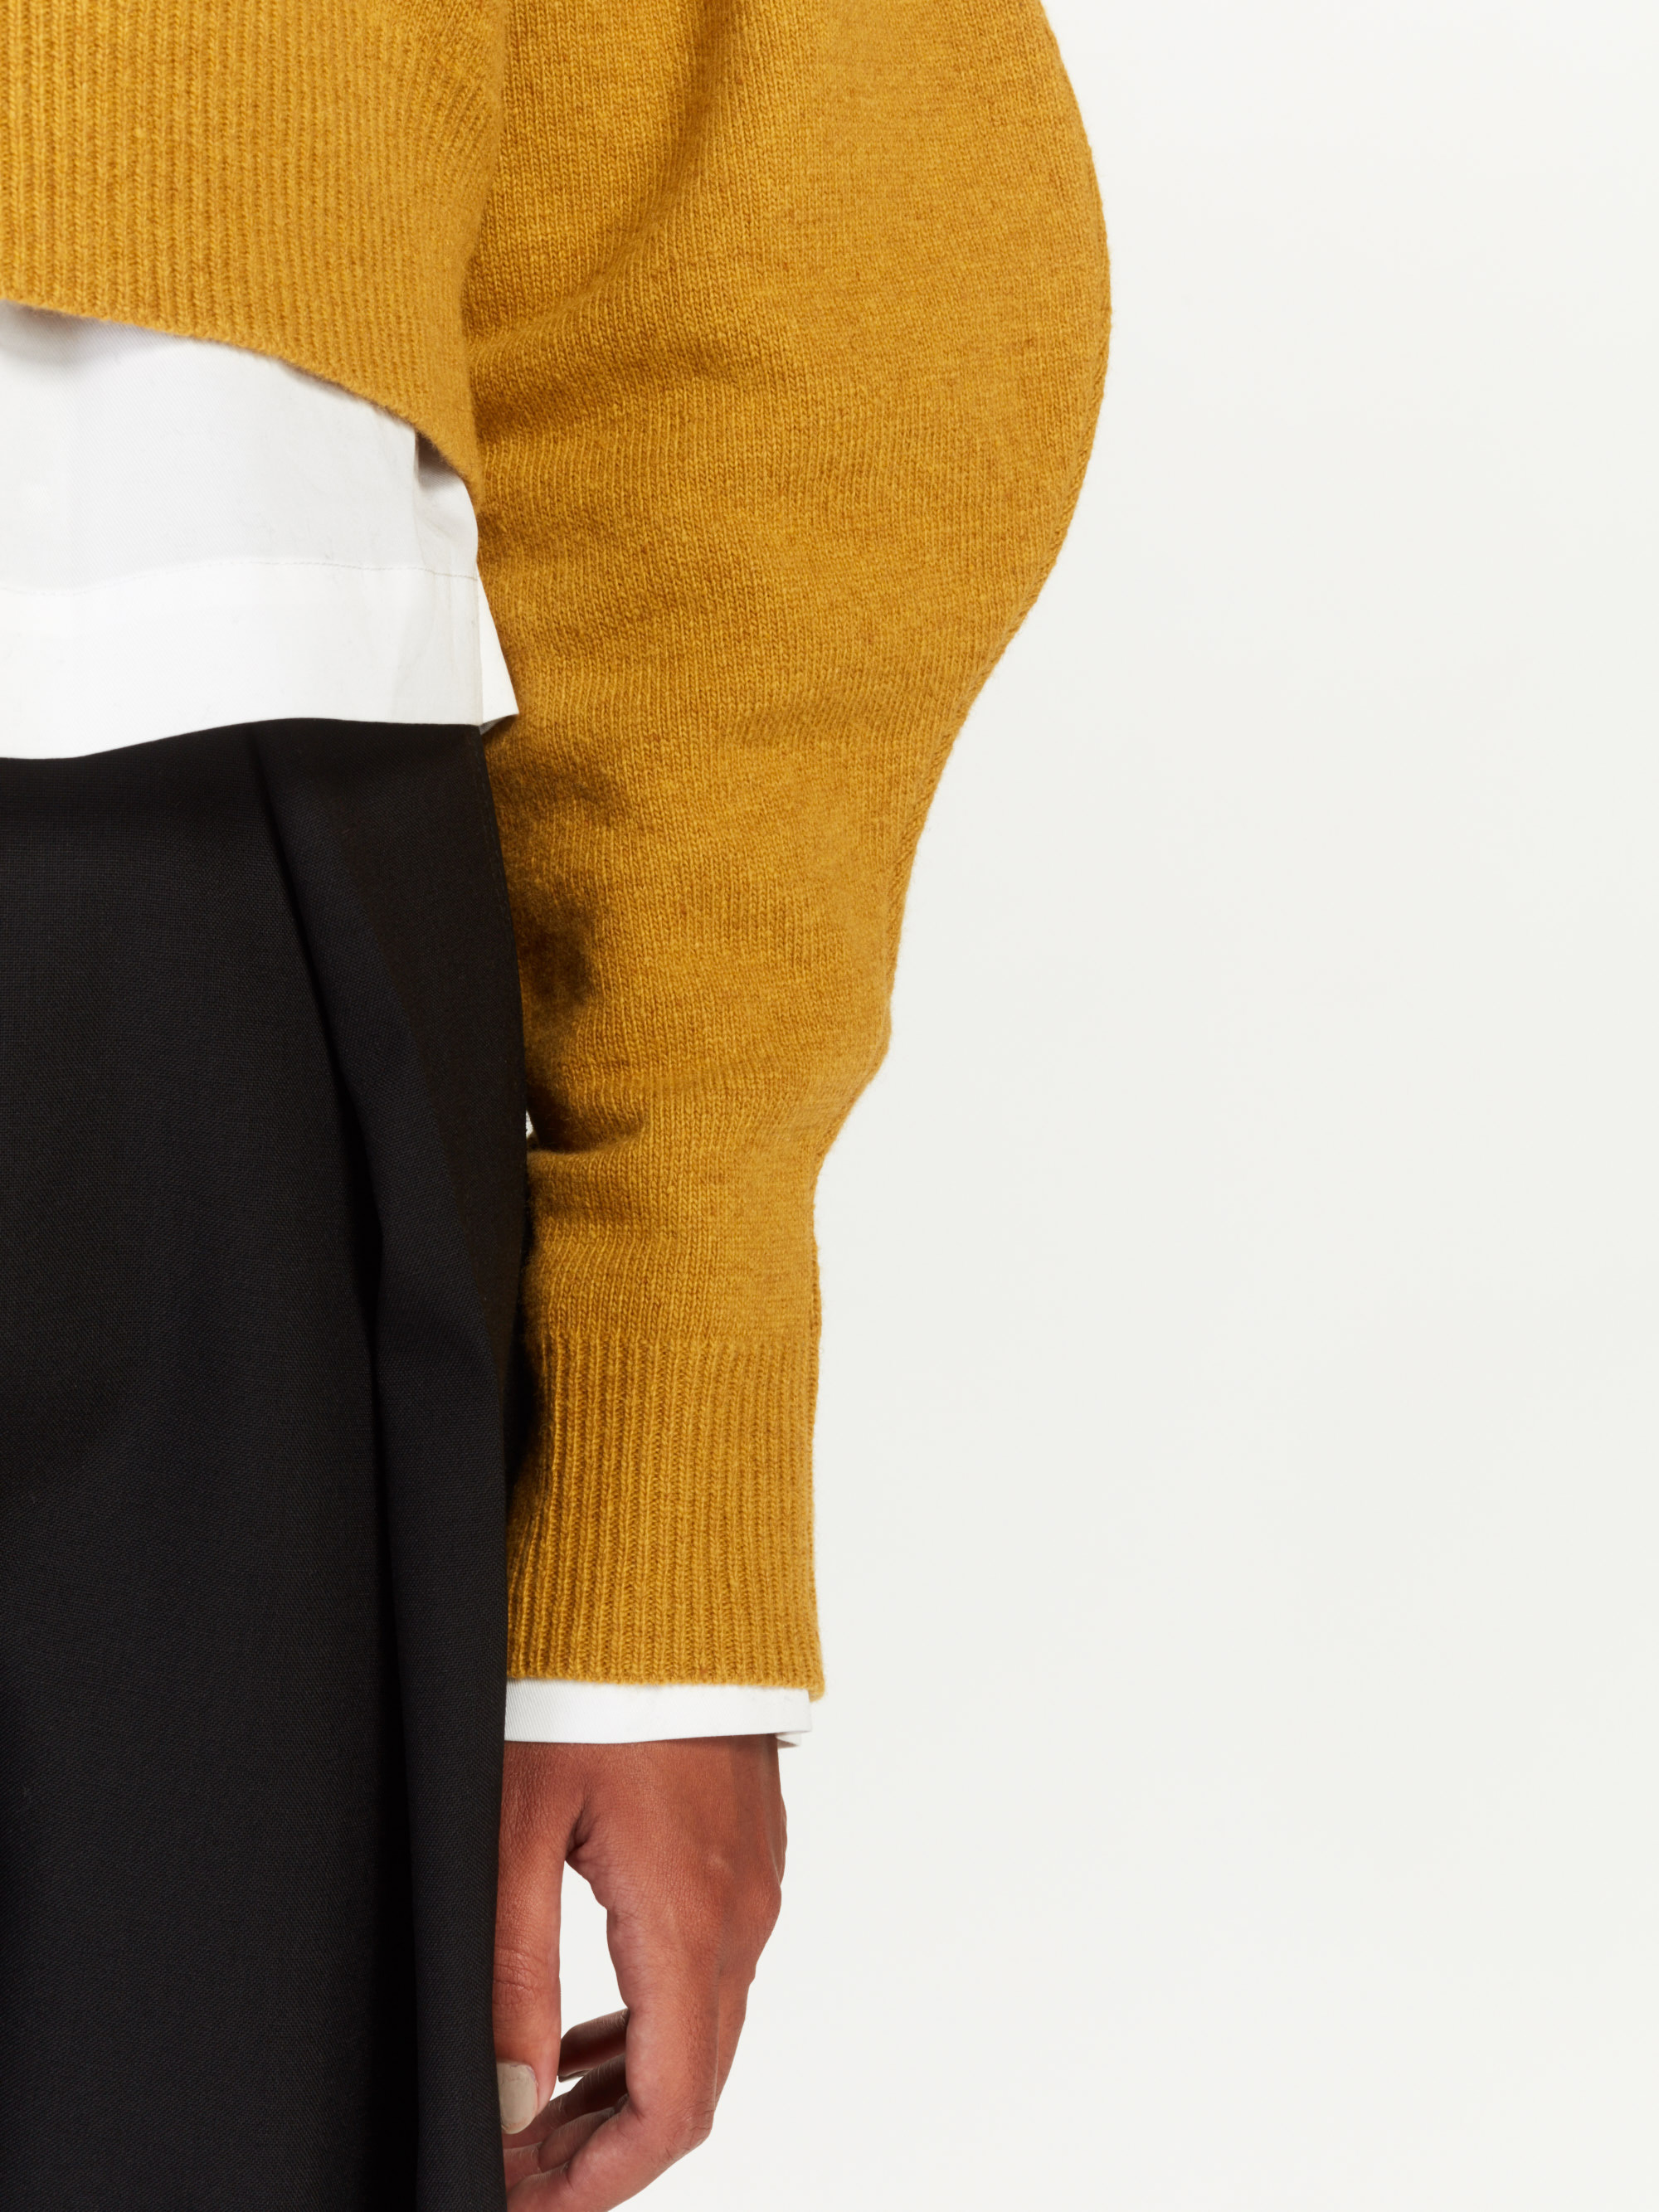 jt_sweater-woolf_25-16-2019__picture-3636